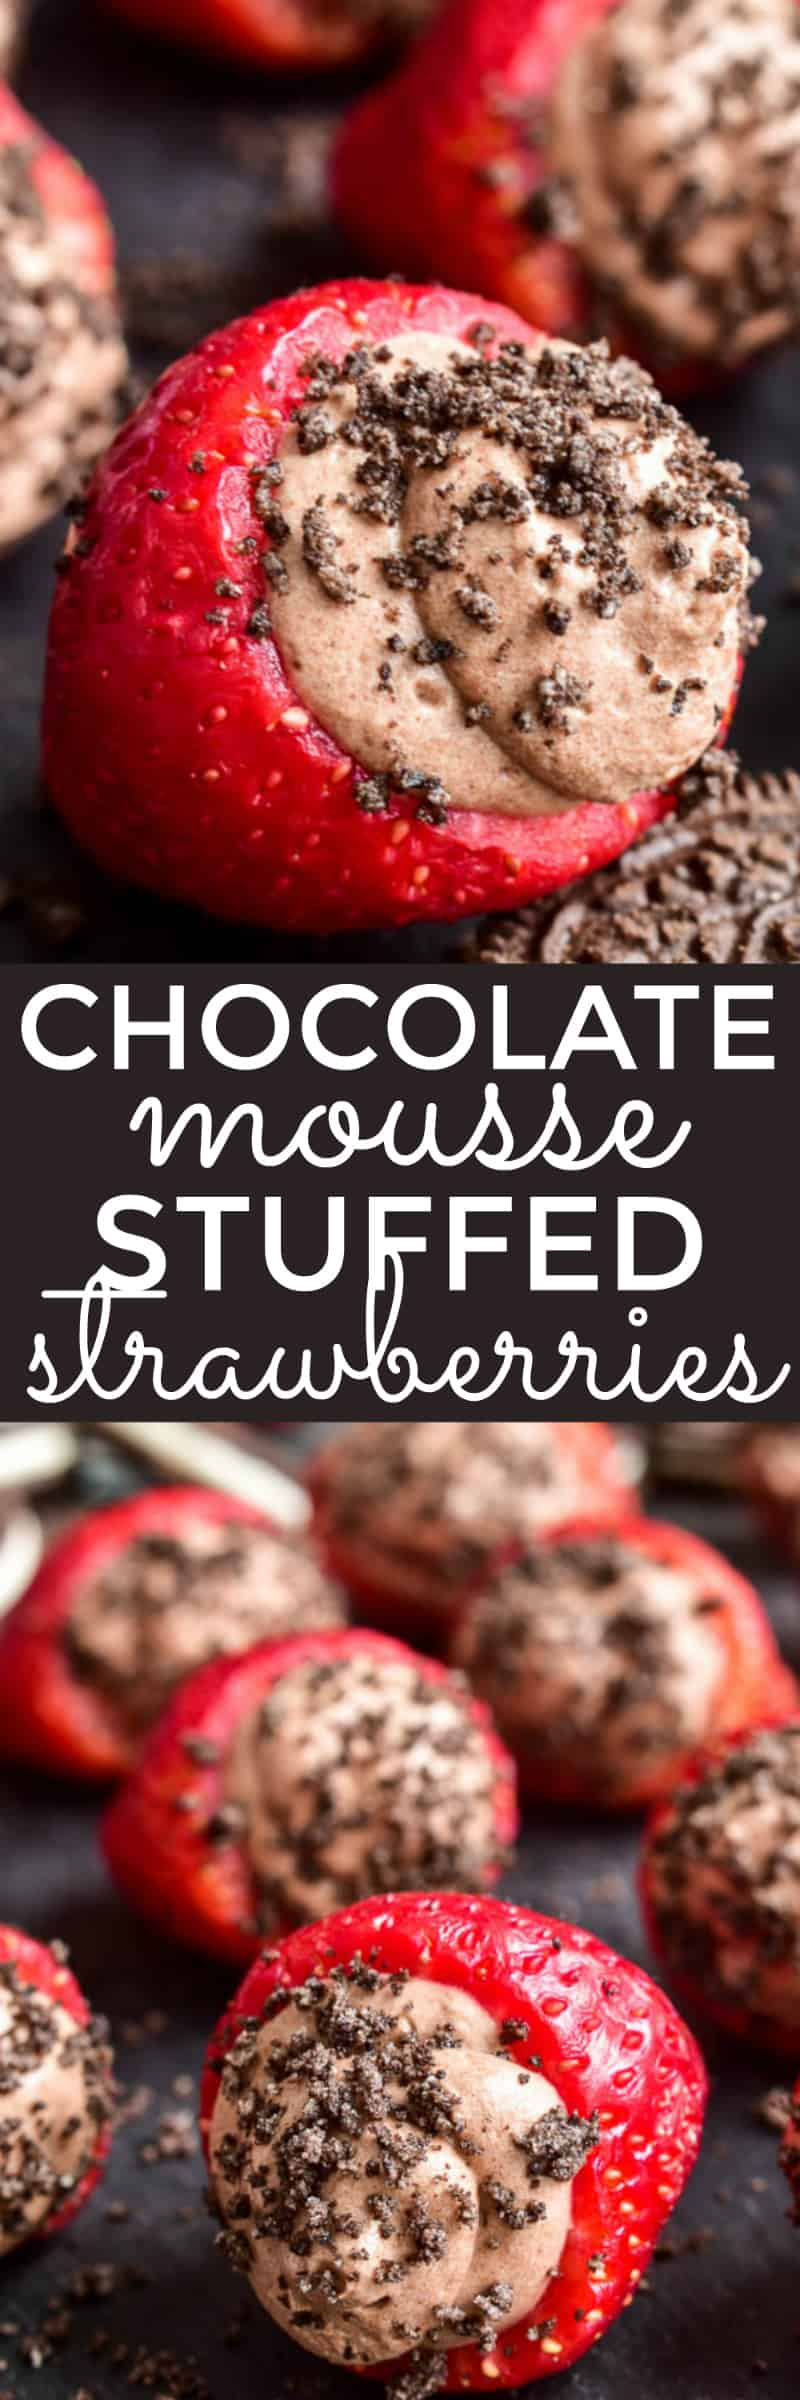 Collage image of Chocolate Mousse Stuffed Strawberries